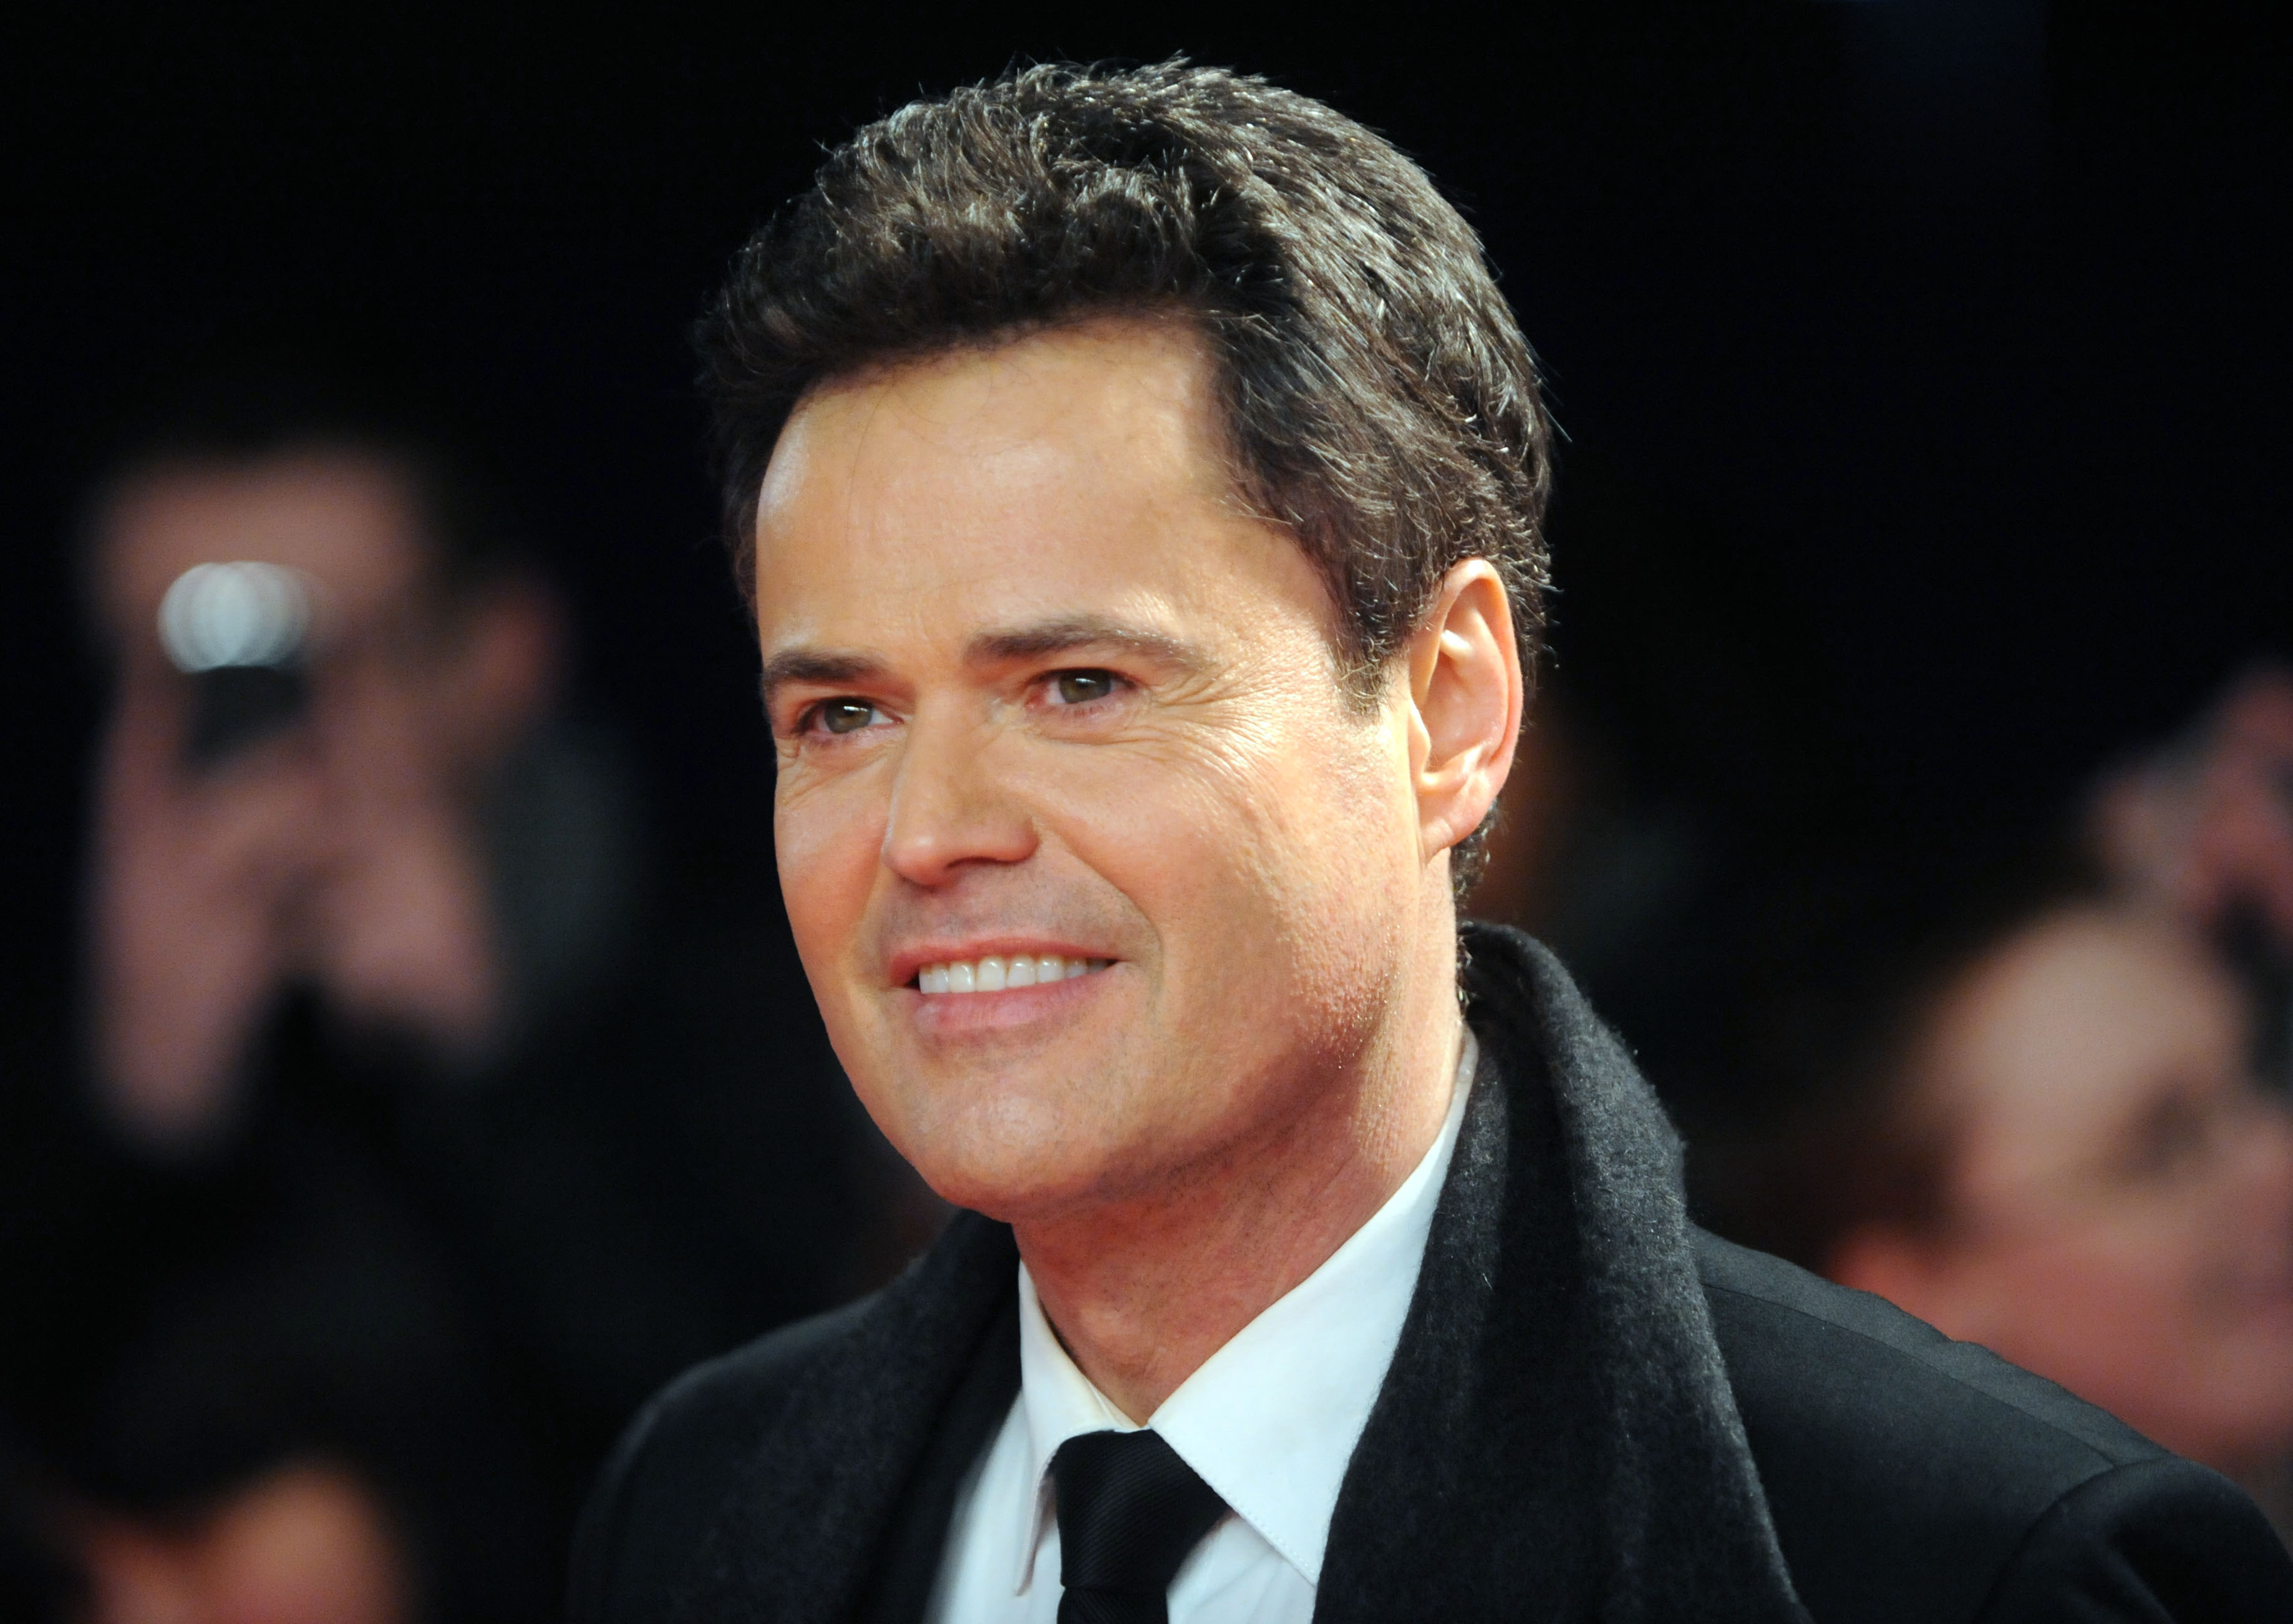 Donny Osmond -- is he The Masked Singer Peacock? Fans think so.